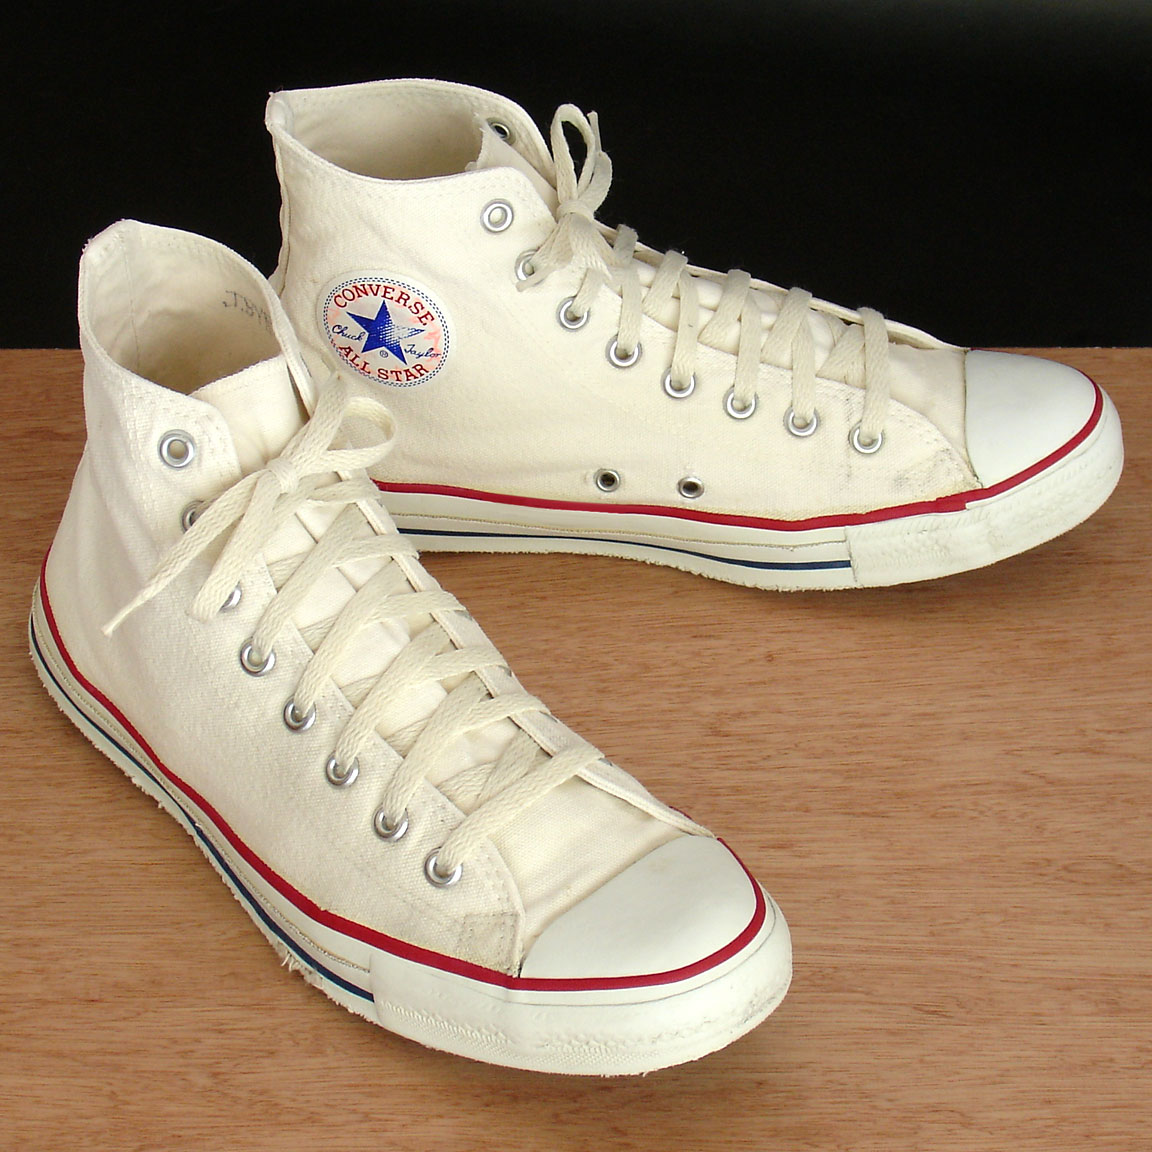 739c943ec2 Vintage American-made Converse All Star Chuck Taylor white shoes for sale  at http